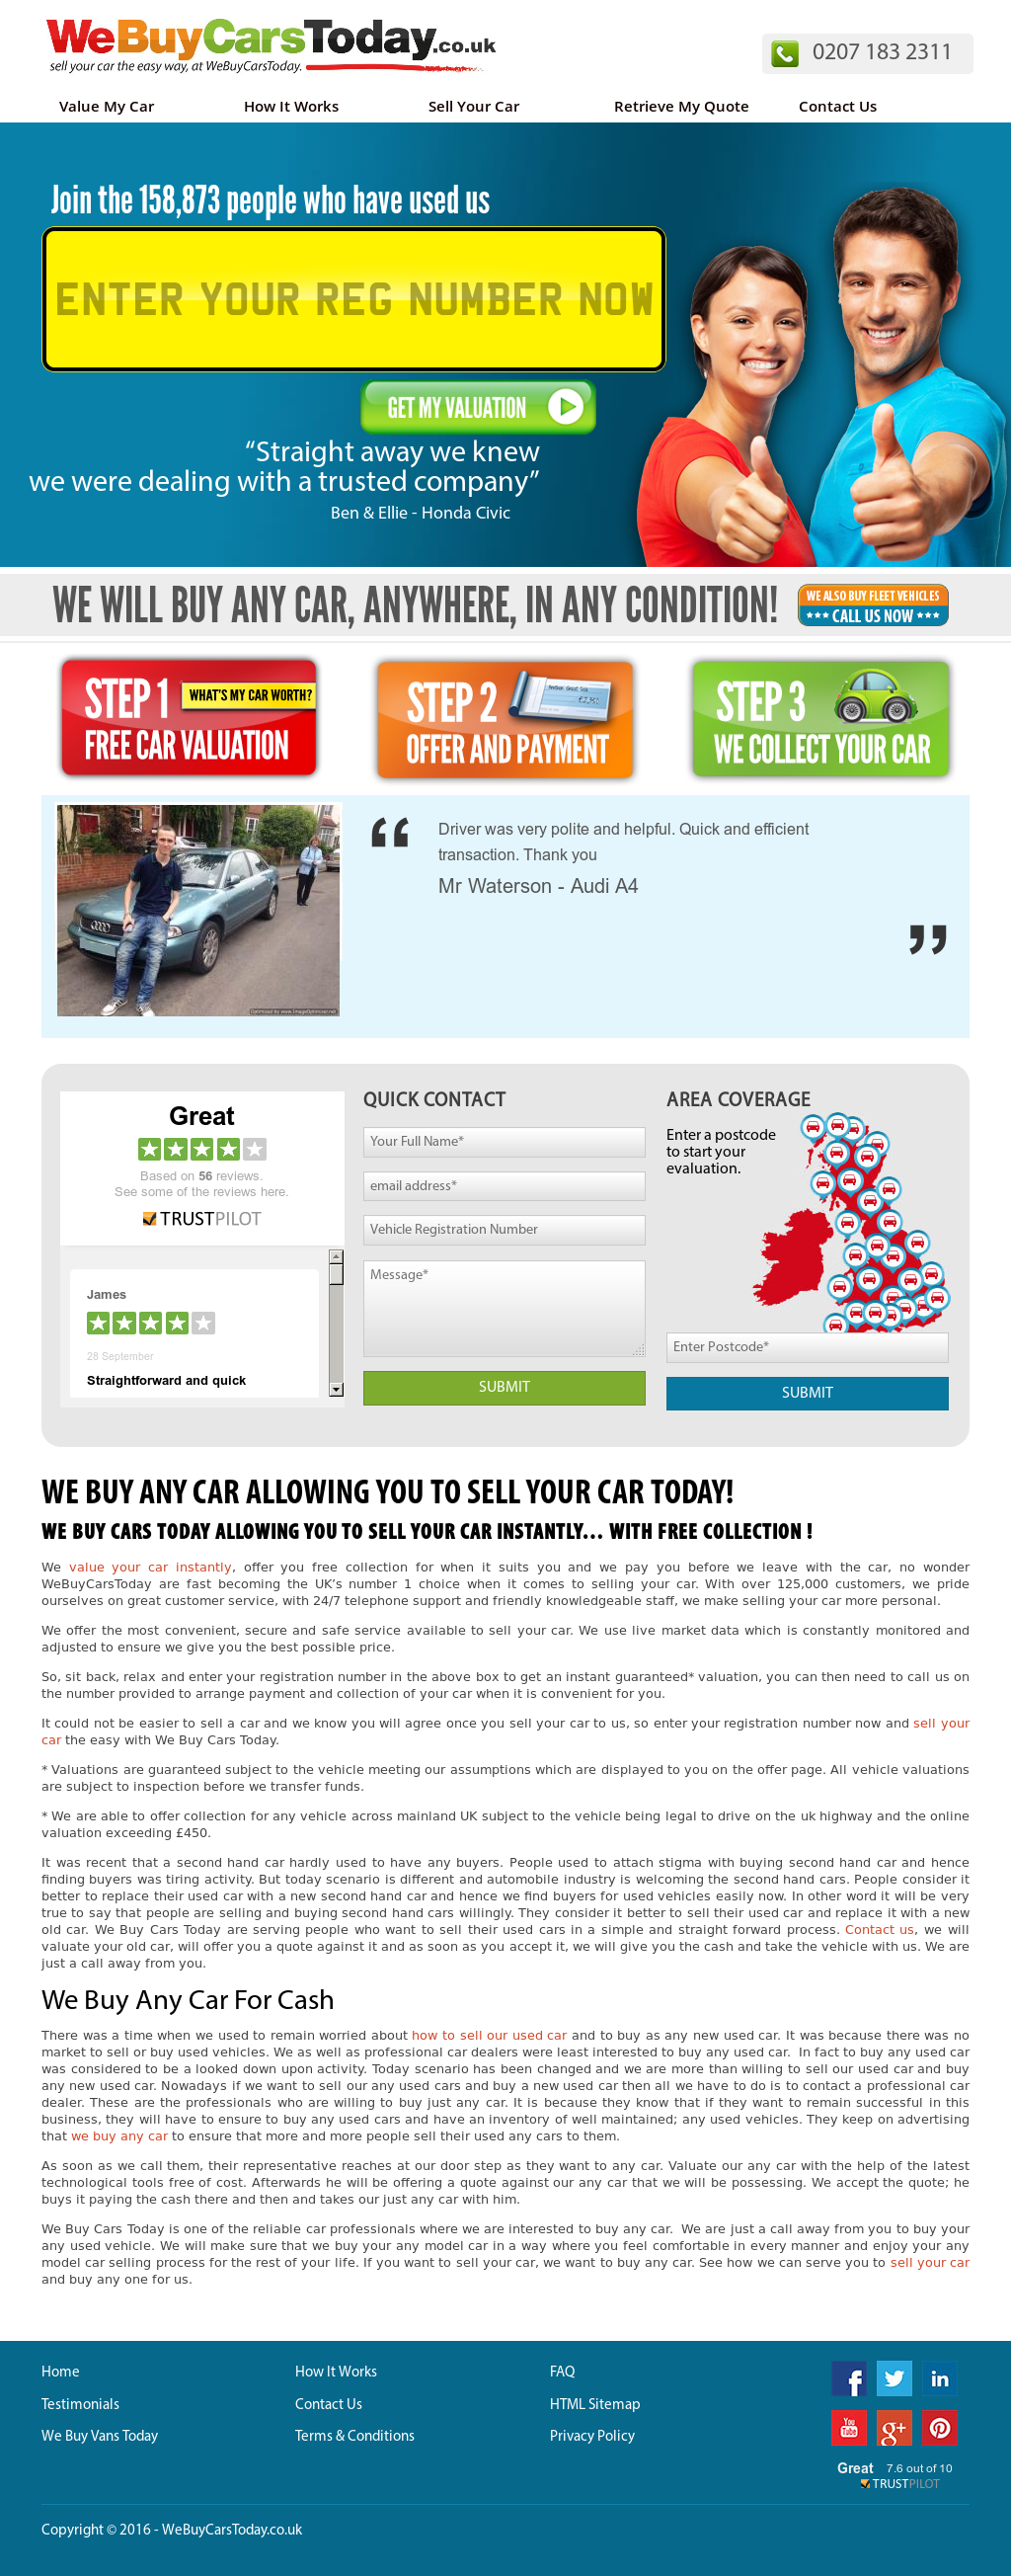 Webuycarstoday Competitors, Revenue and Employees - Owler Company ...